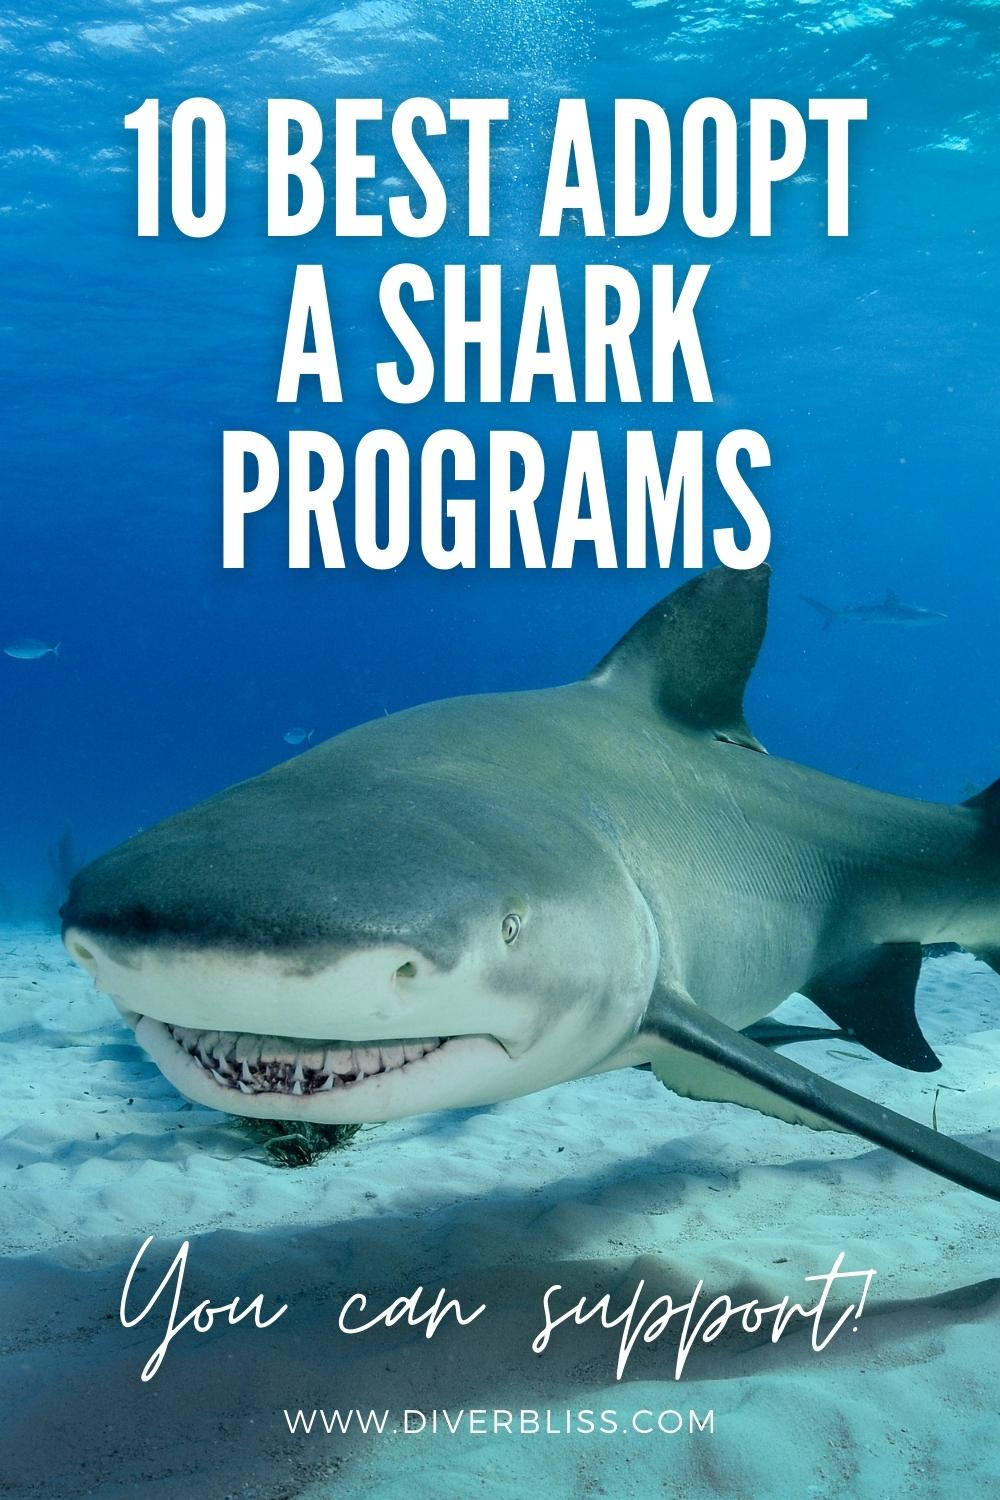 10 best adopt a shark programs you can support